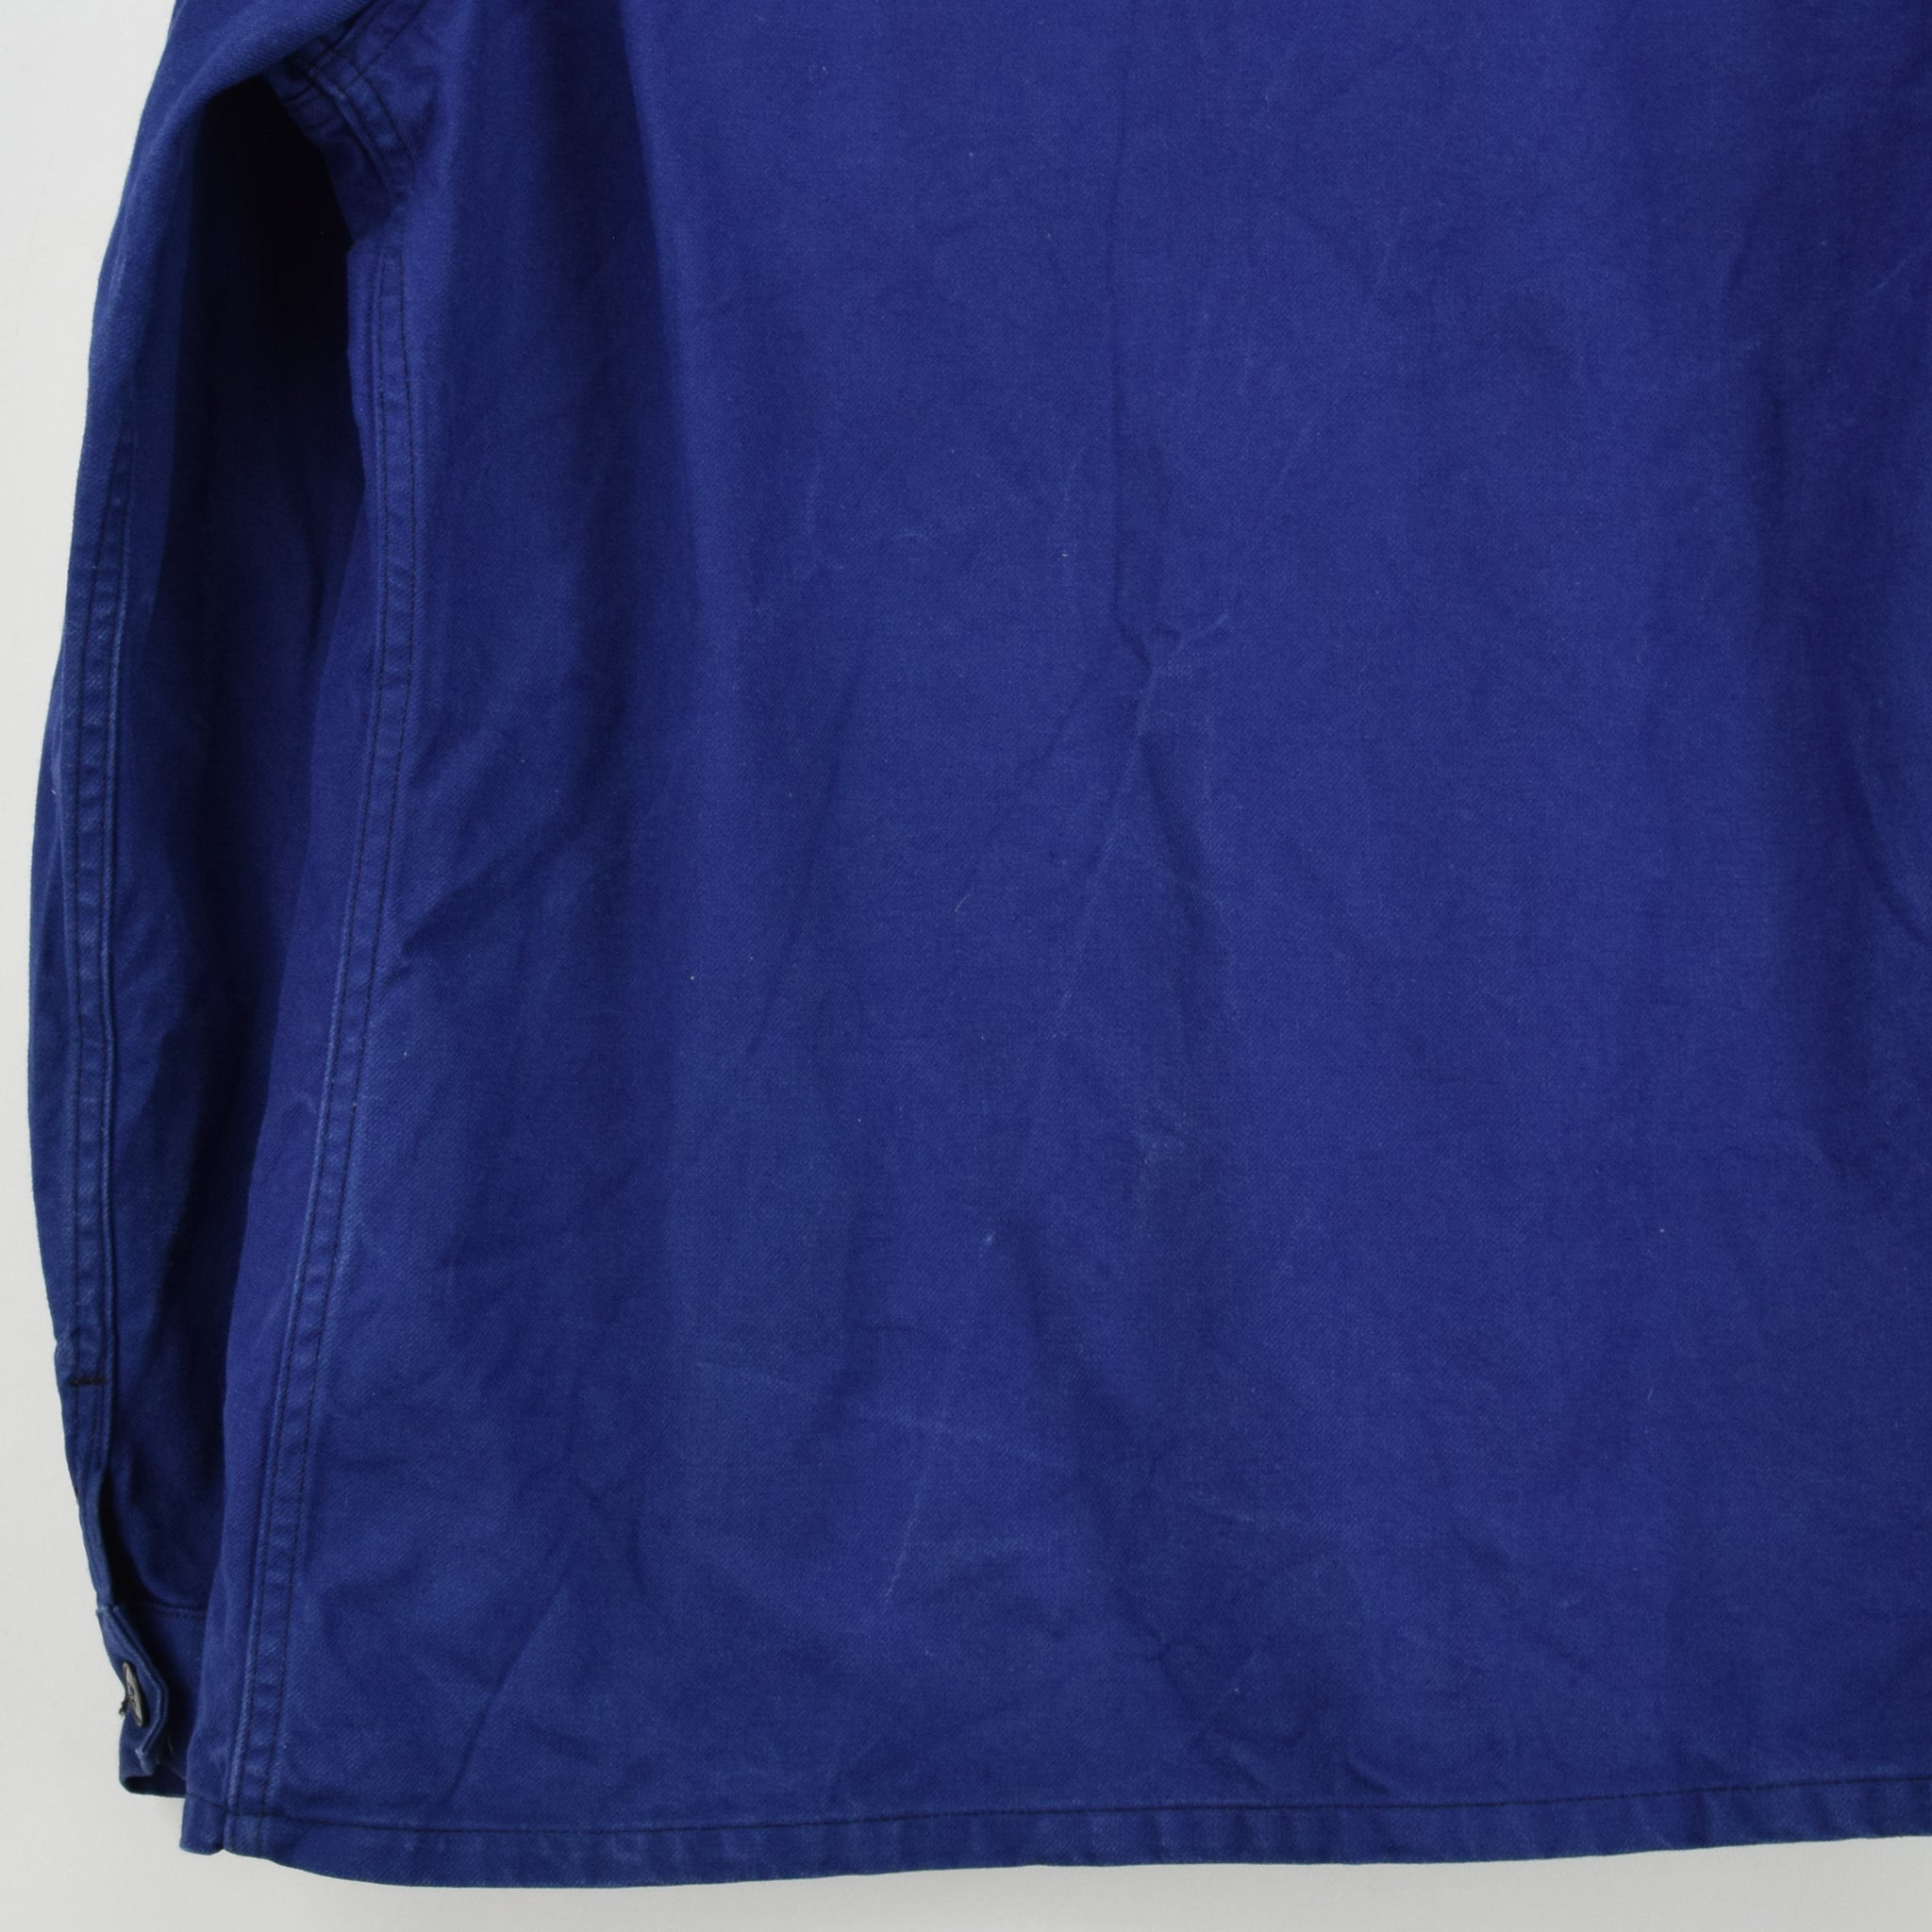 Vintage Indigo Blue French Worker Sanforized Cotton Chore Jacket L back hem